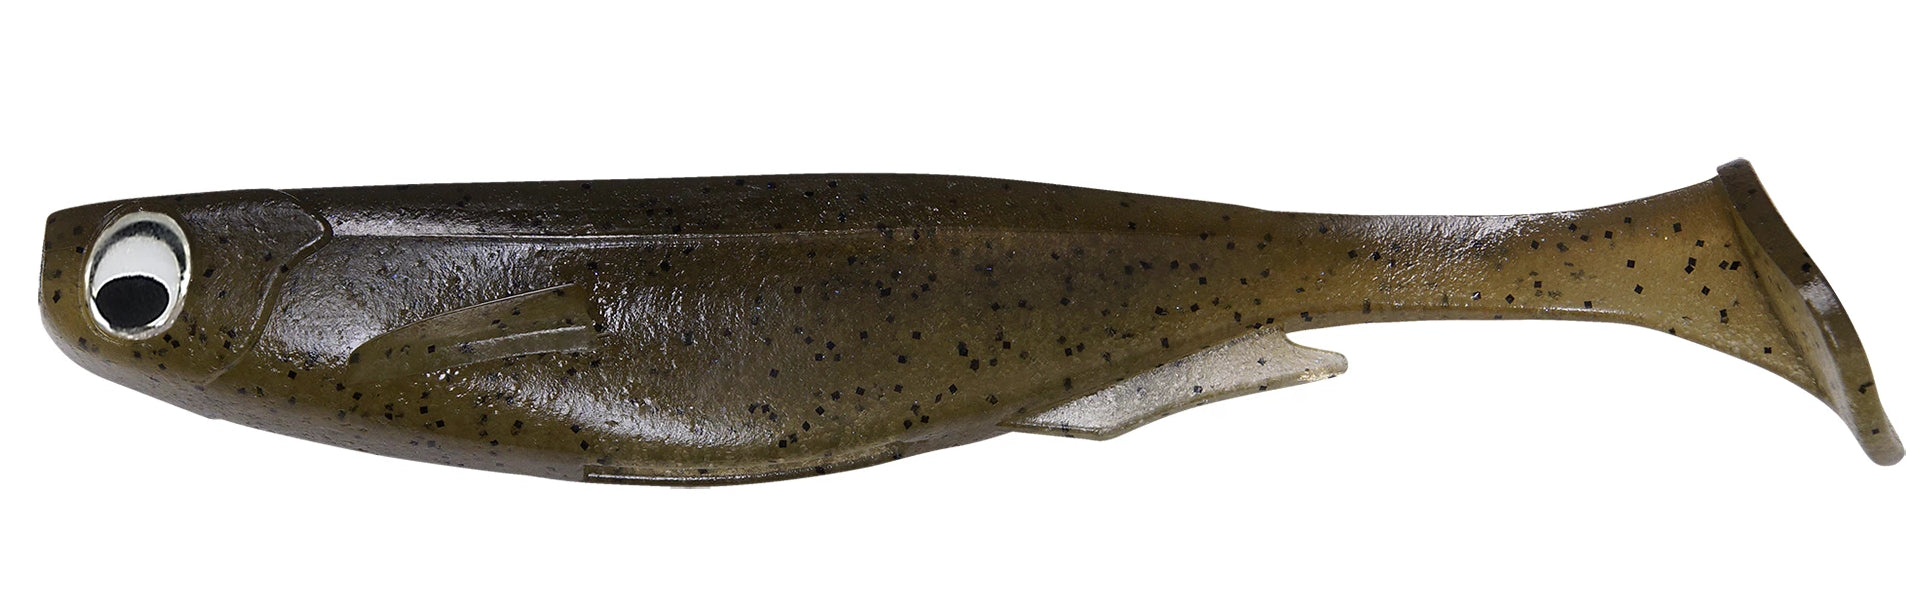 Megabass Spark Shad Swimbait 4 inch Paddle Tail Swimbait